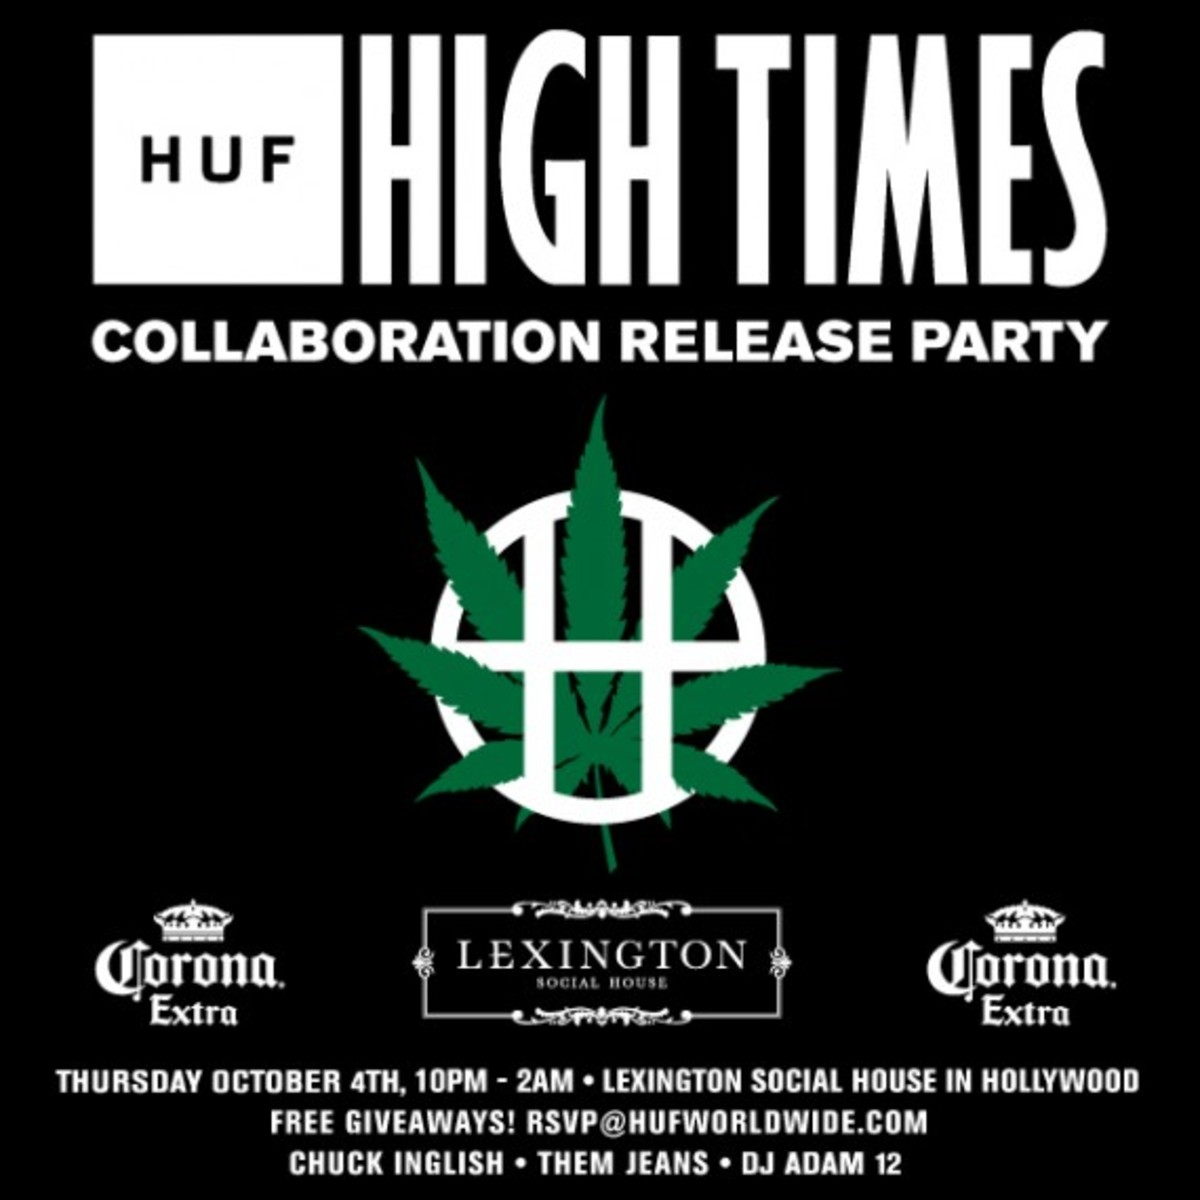 huf-high-times-capsule-collection-release-party-01